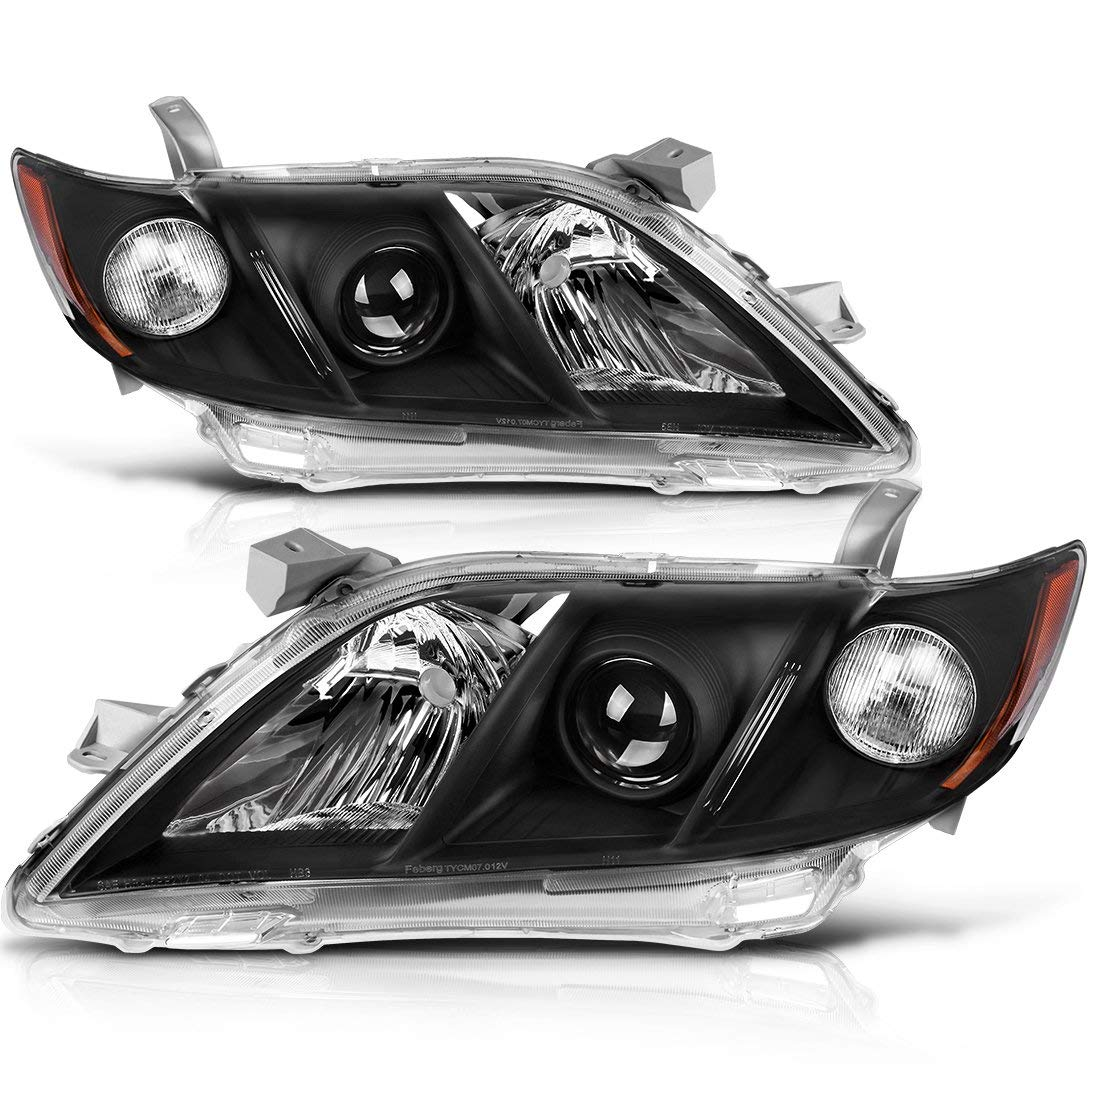 For 2007 2008 2009 Toyota Camry Headlight Assembly Black Housing Headlamp with Amber Reflector Clear Lens (Driver and Passenger Side)